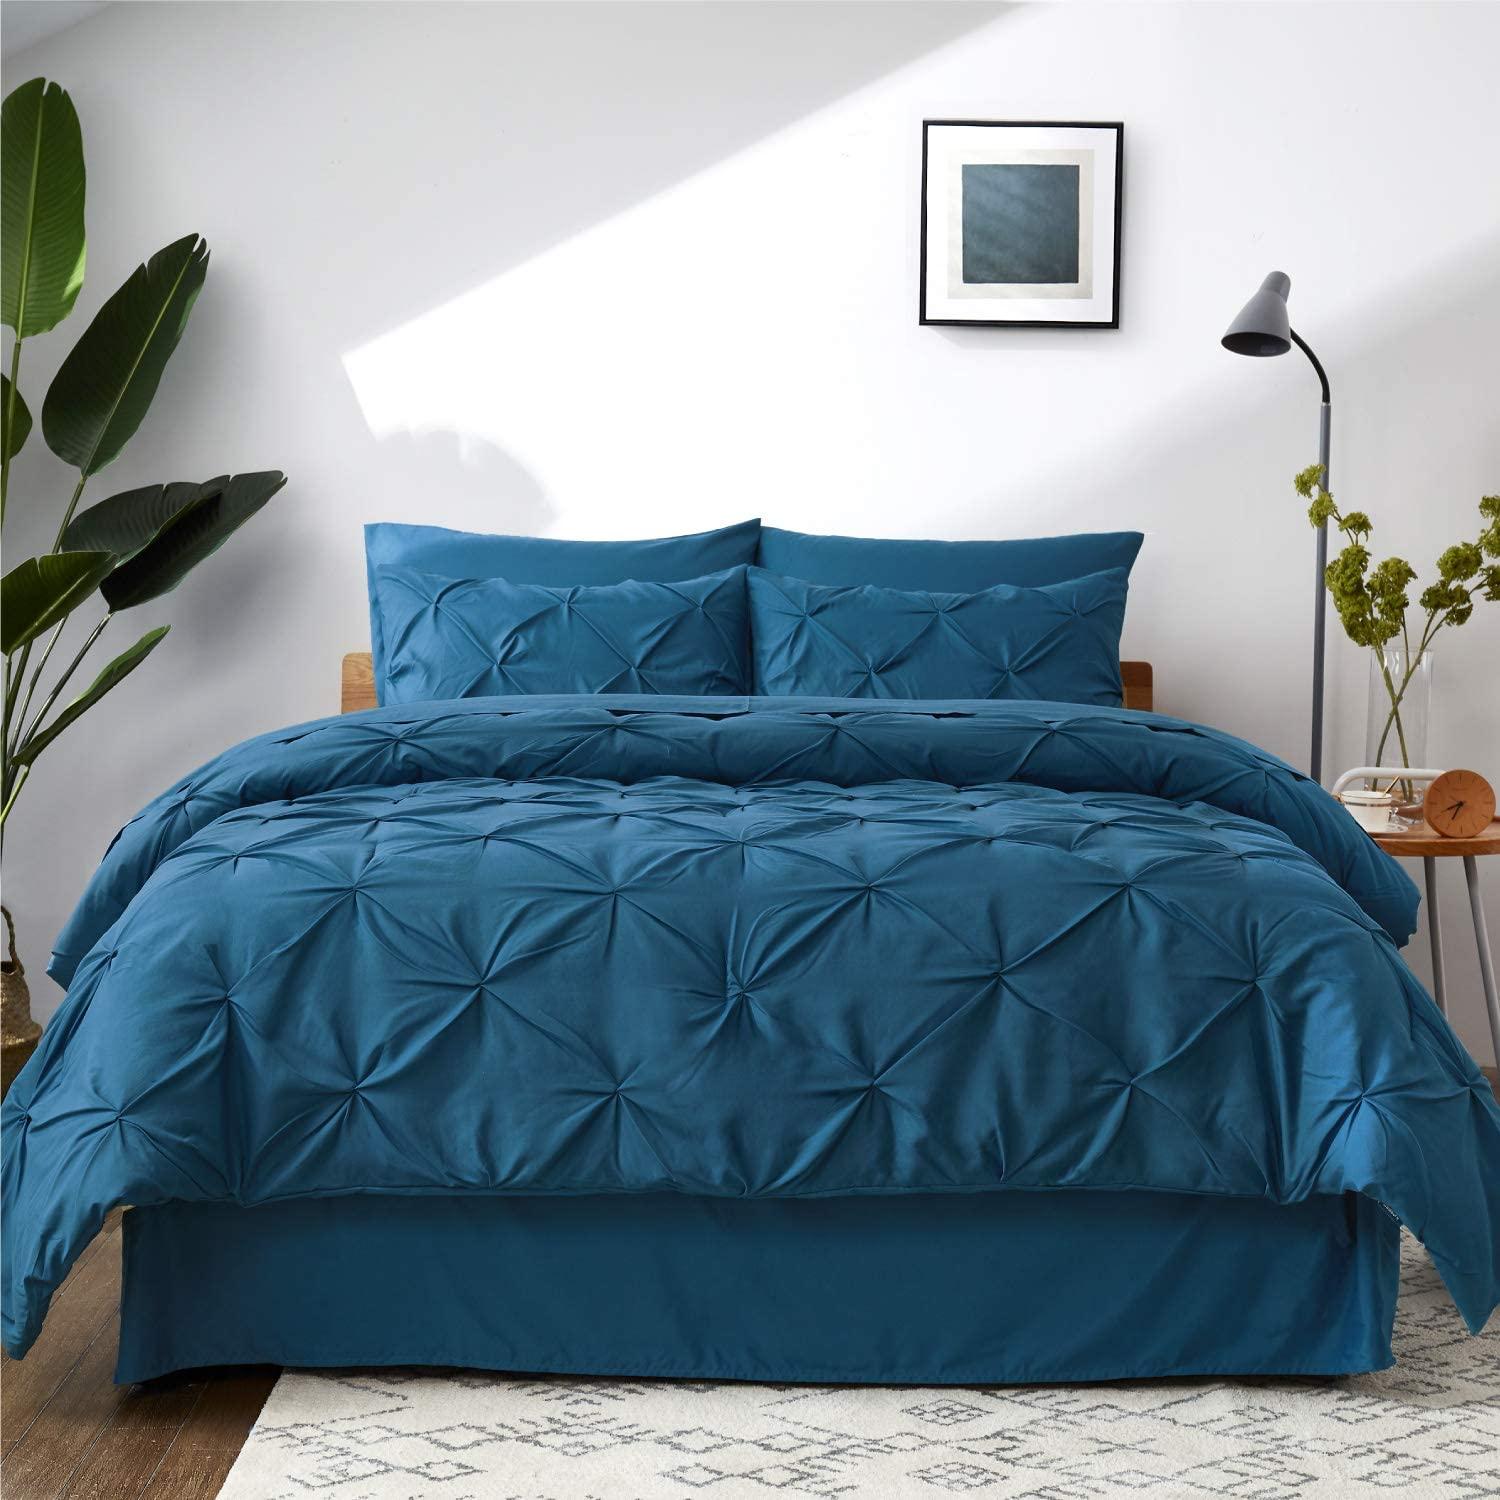 Bedsure Comforter Set Full/Queen Bed in A Bag Teal 8 Pieces - 1 Pinch Pleat Comforter(88x88 inches), 2 Pillow Shams, 1 Flat Sheet, 1 Fitted Sheet, 1 Bed Skirt, 2 Pillowcases